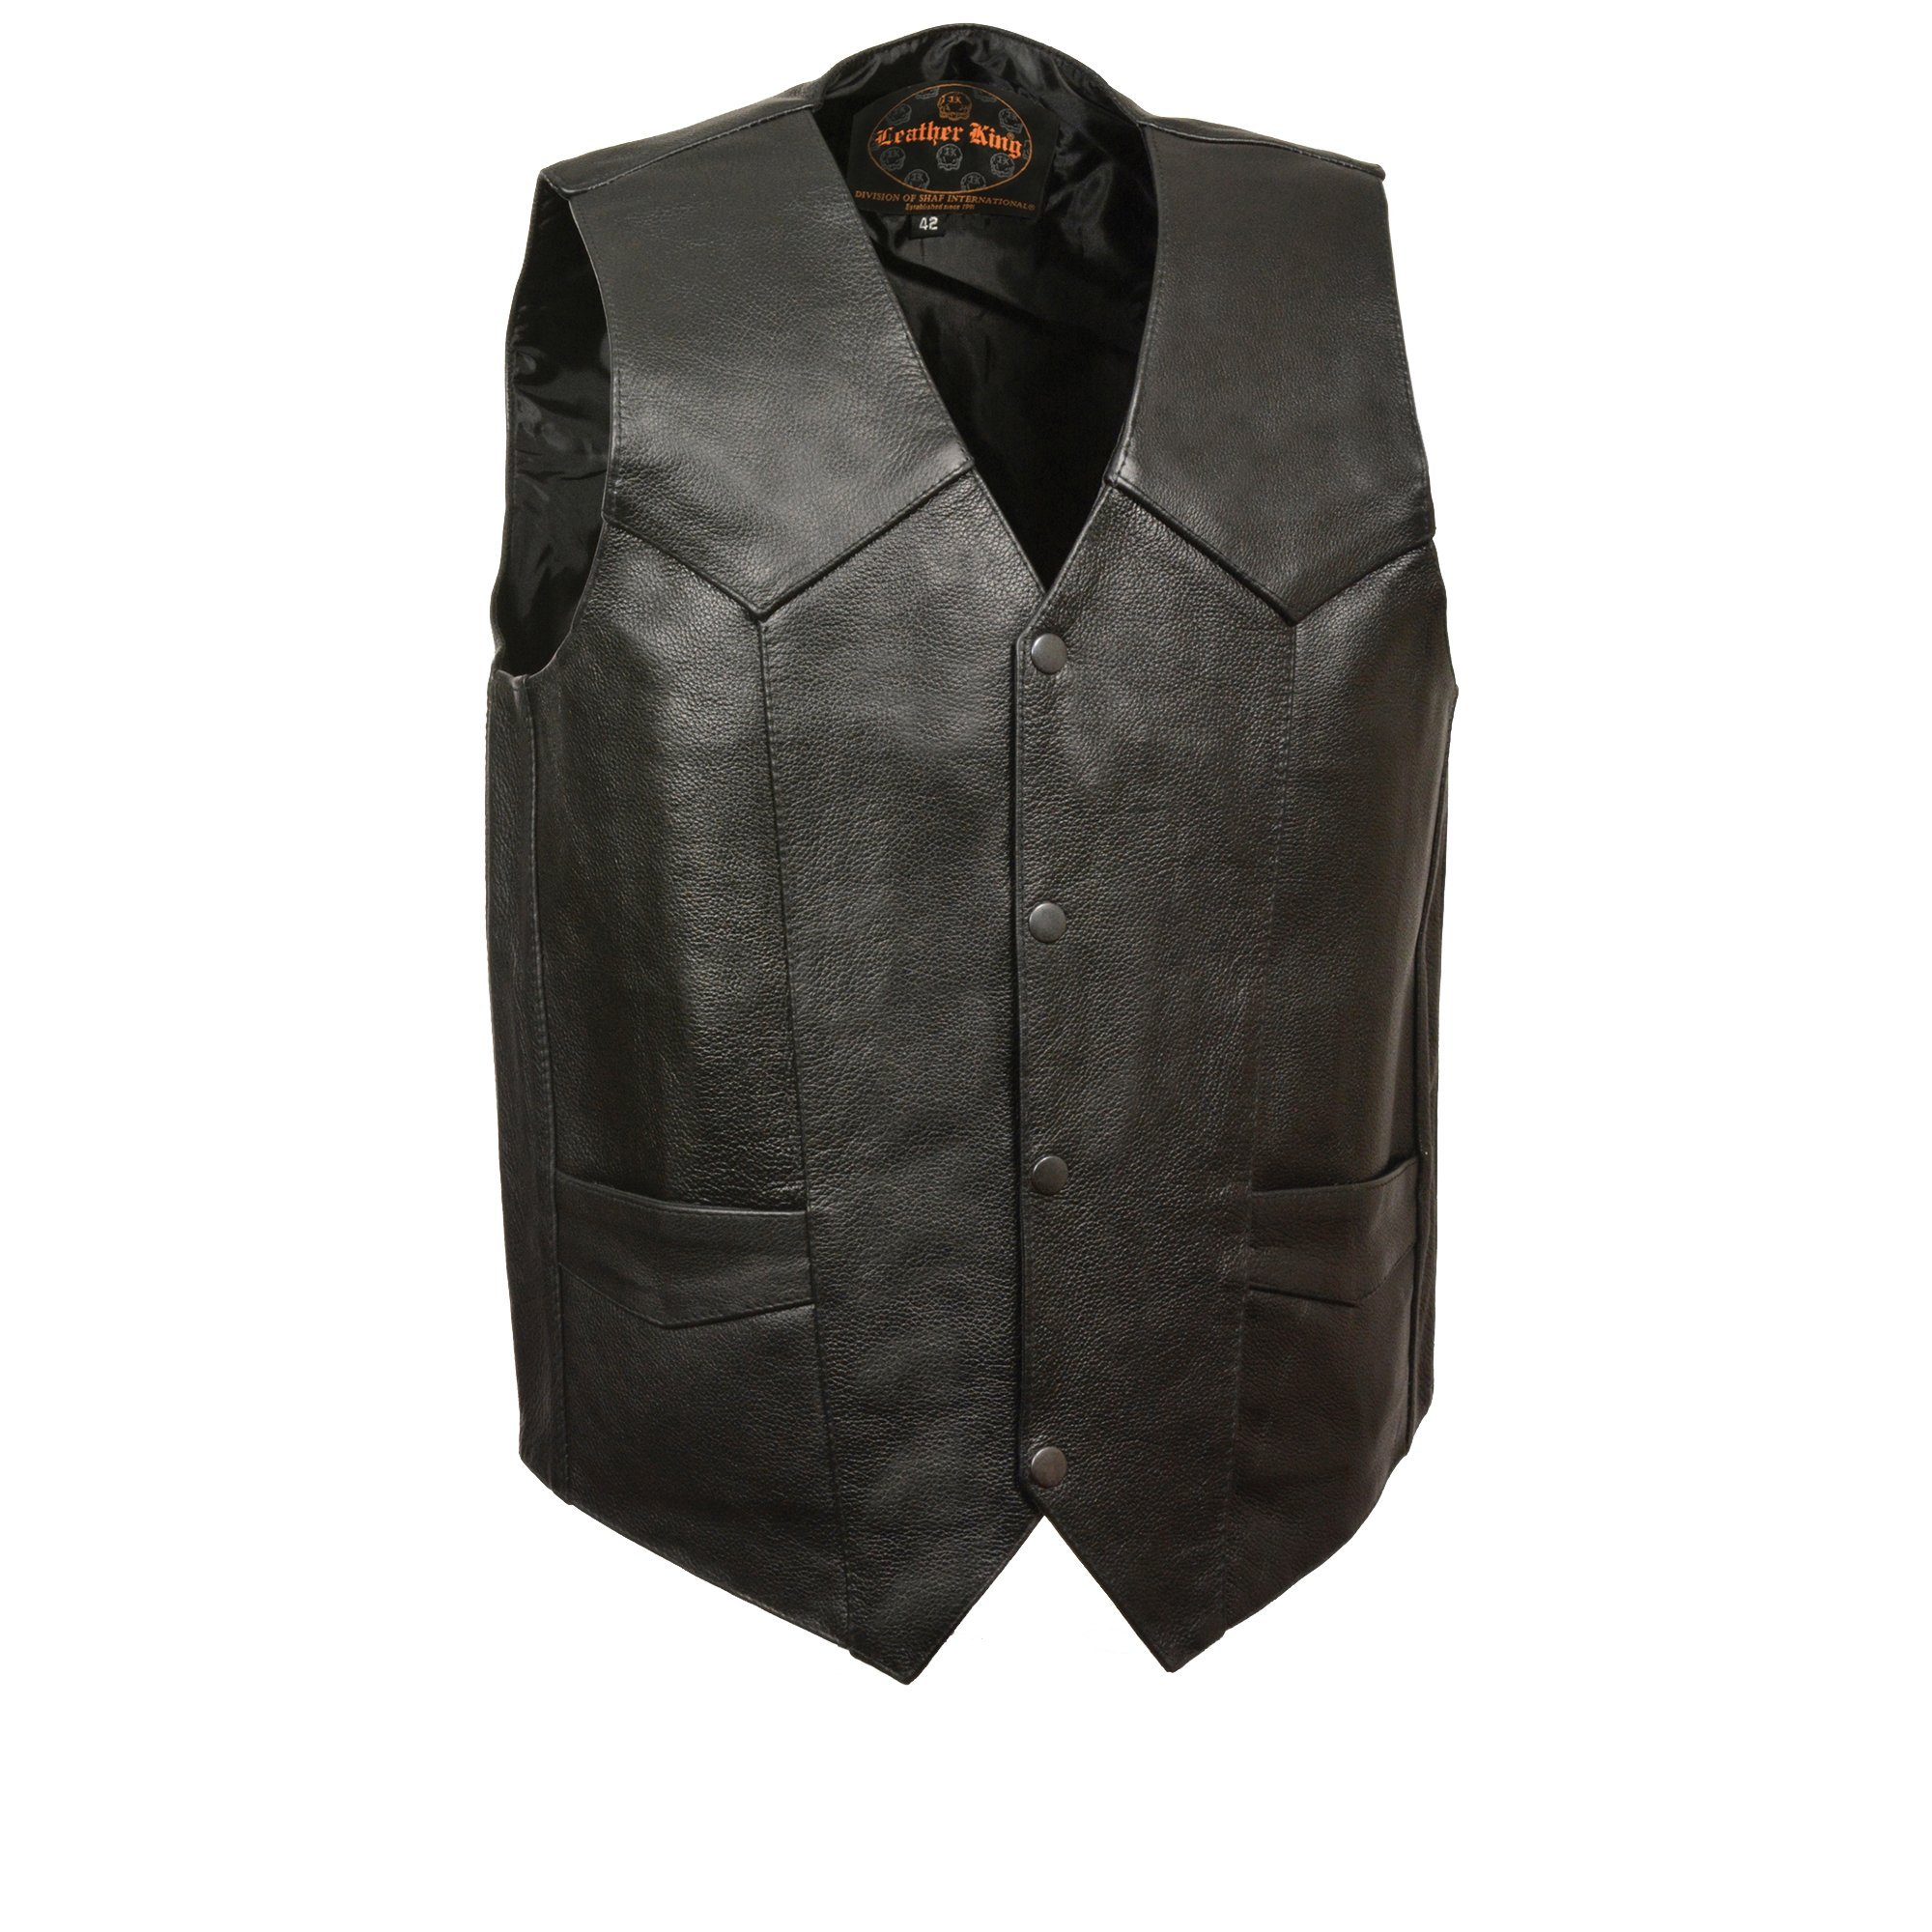 M-BOSS MOTORCYCLE APPAREL-BOS13514T-BLACK-Men's tall size basic concealed carry biker leather vest.-BLACK-X-LARGE-TALL by M-BOSS MOTORCYCLE APPAREL (Image #1)